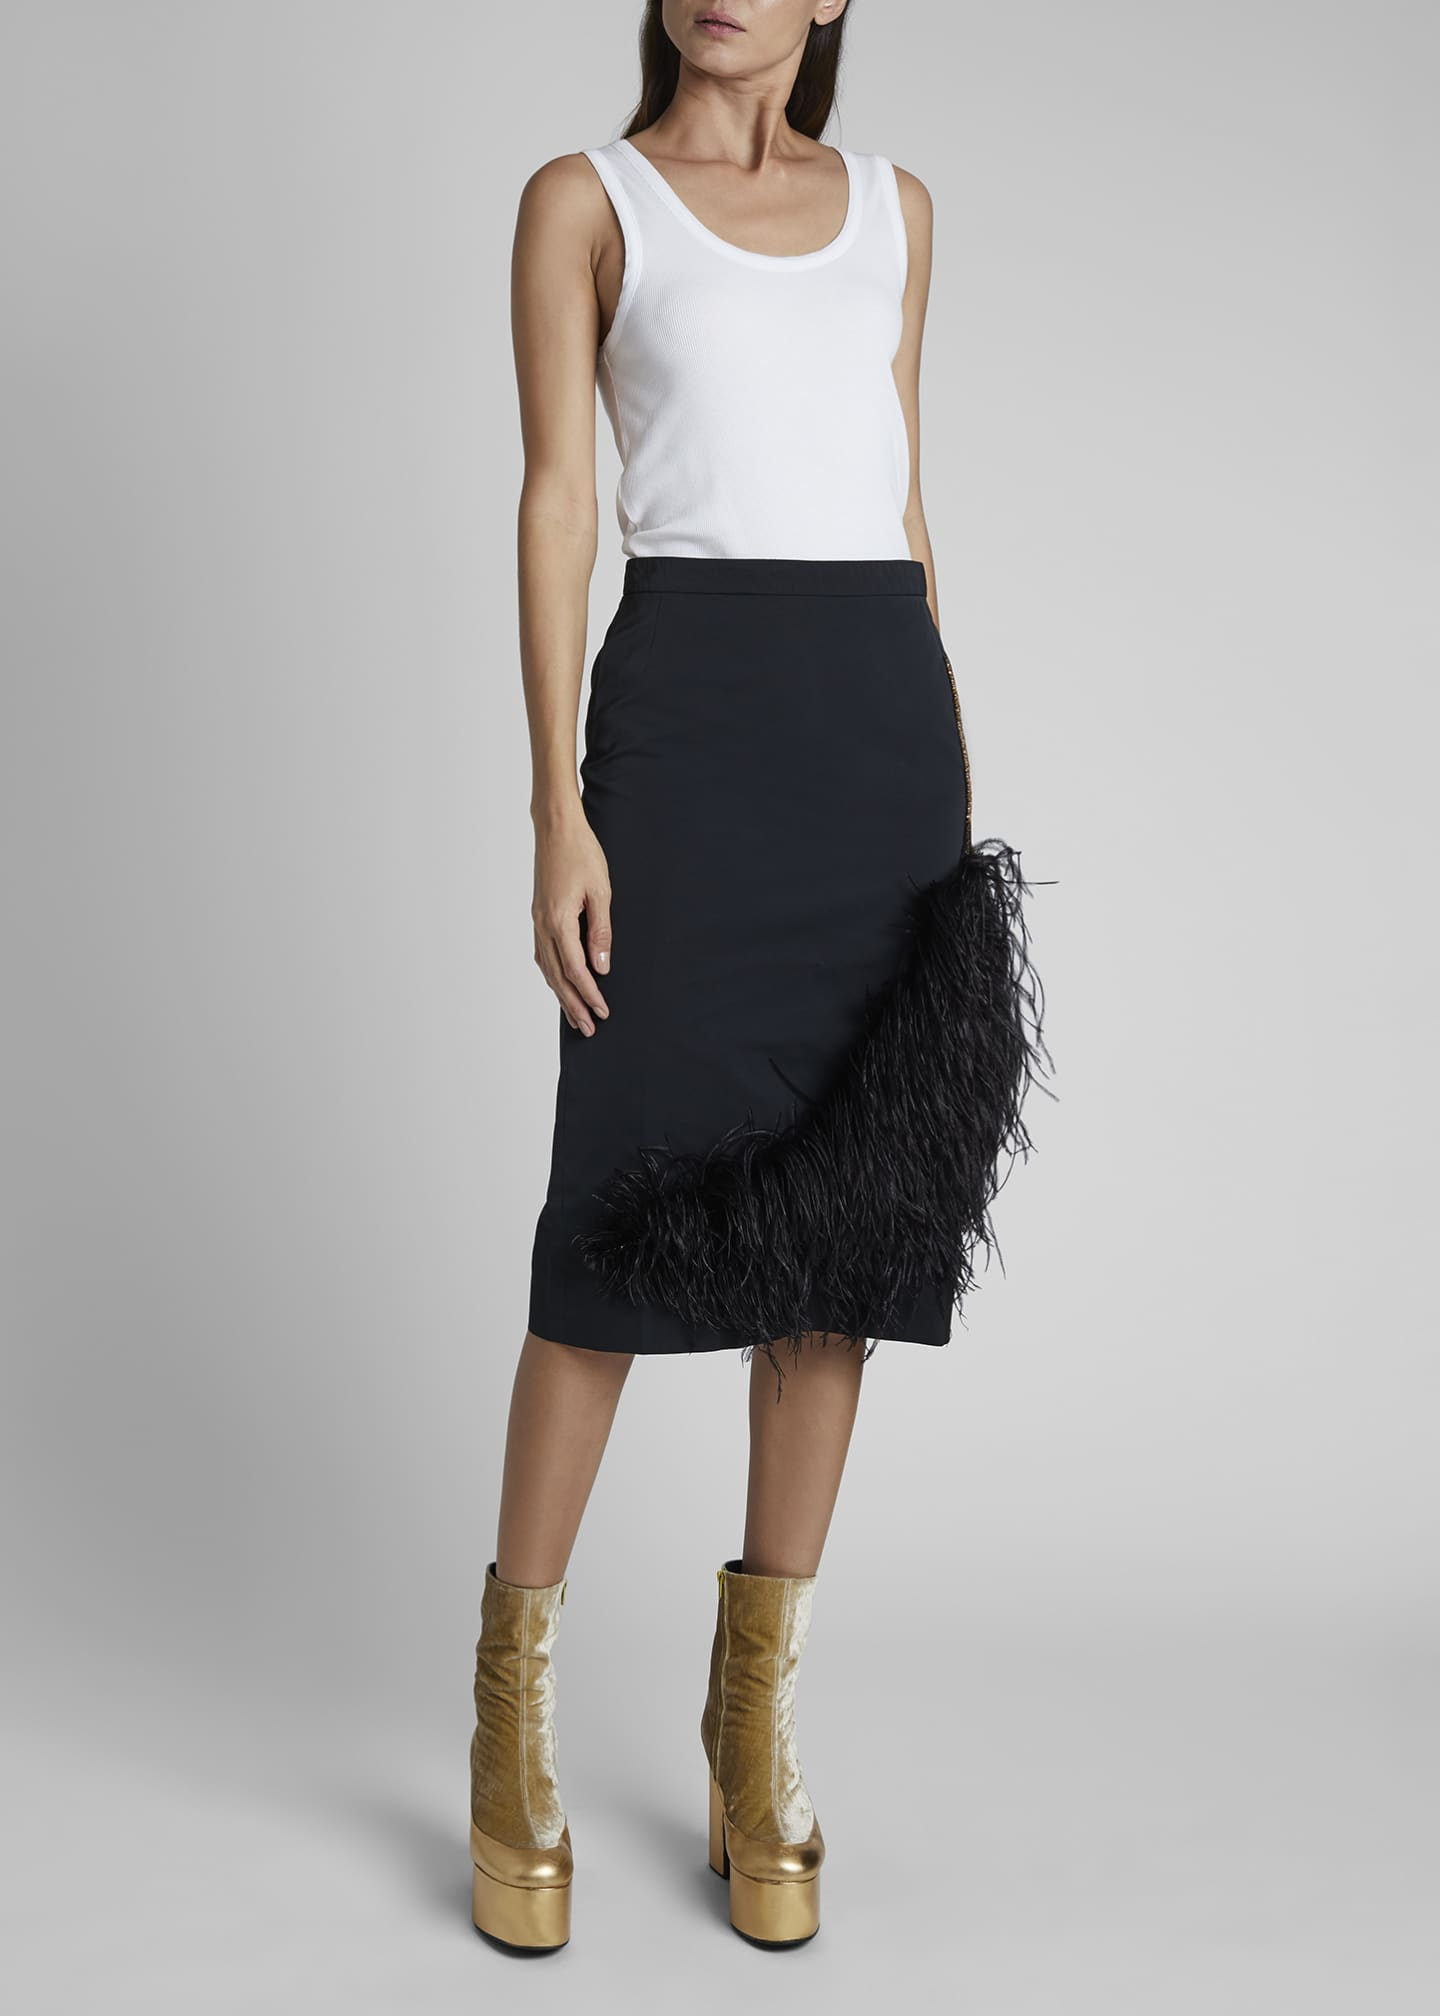 Image 1 of 3: Santony Feathered Pencil Skirt